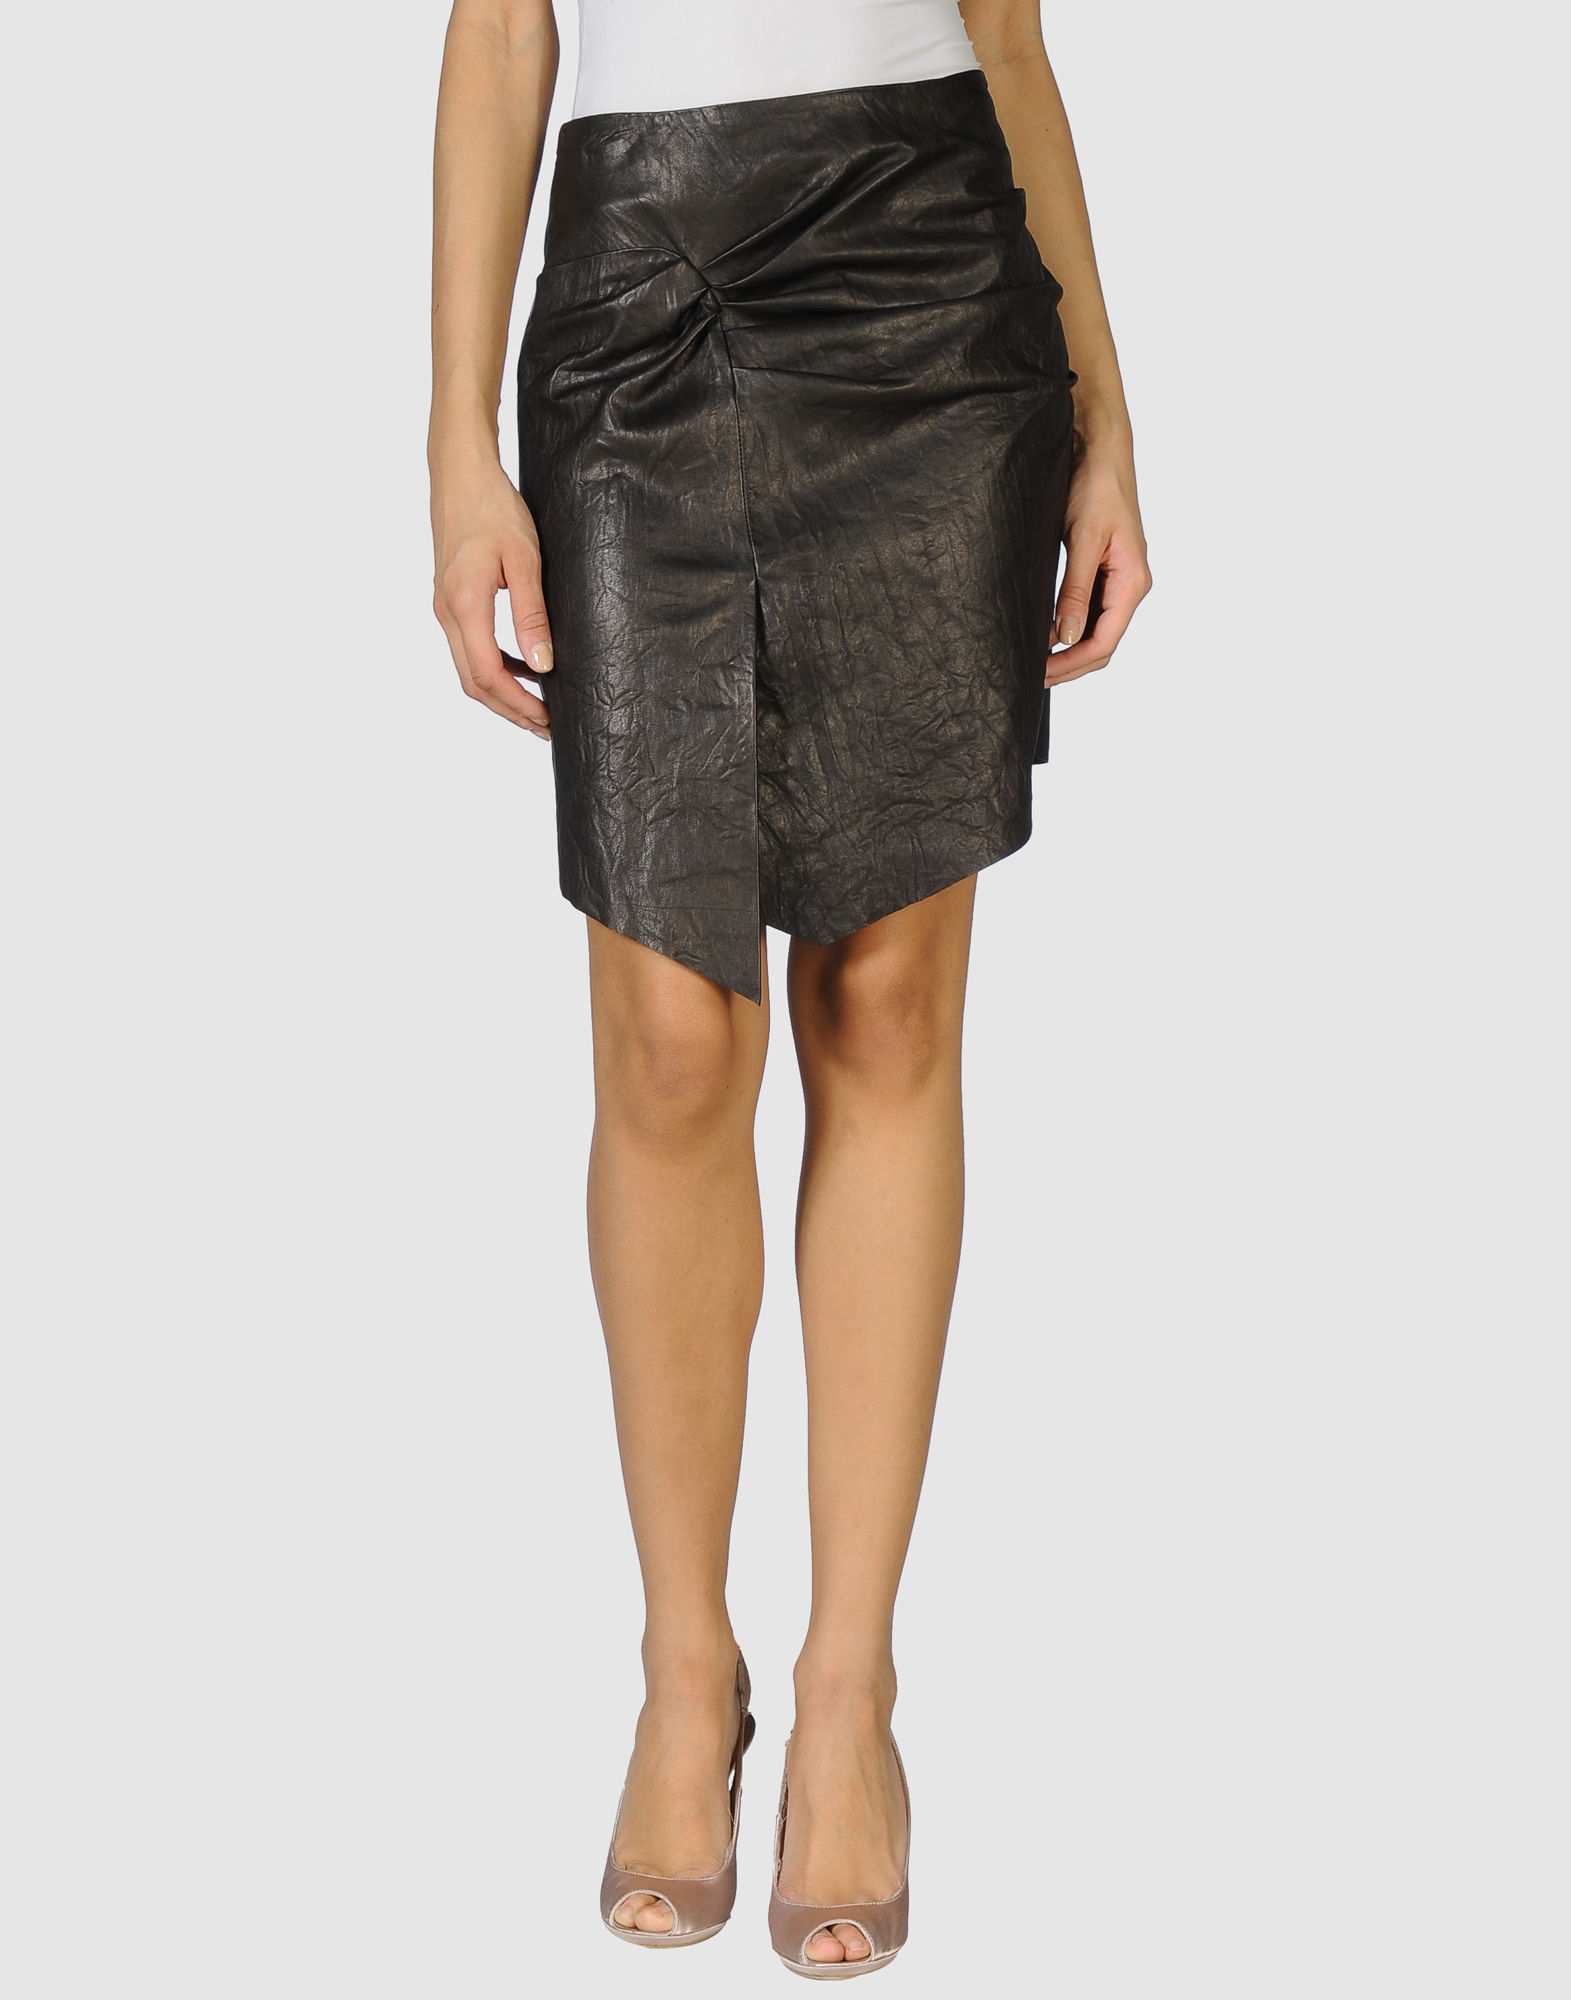 catherine malandrino leather skirt in gray steel grey